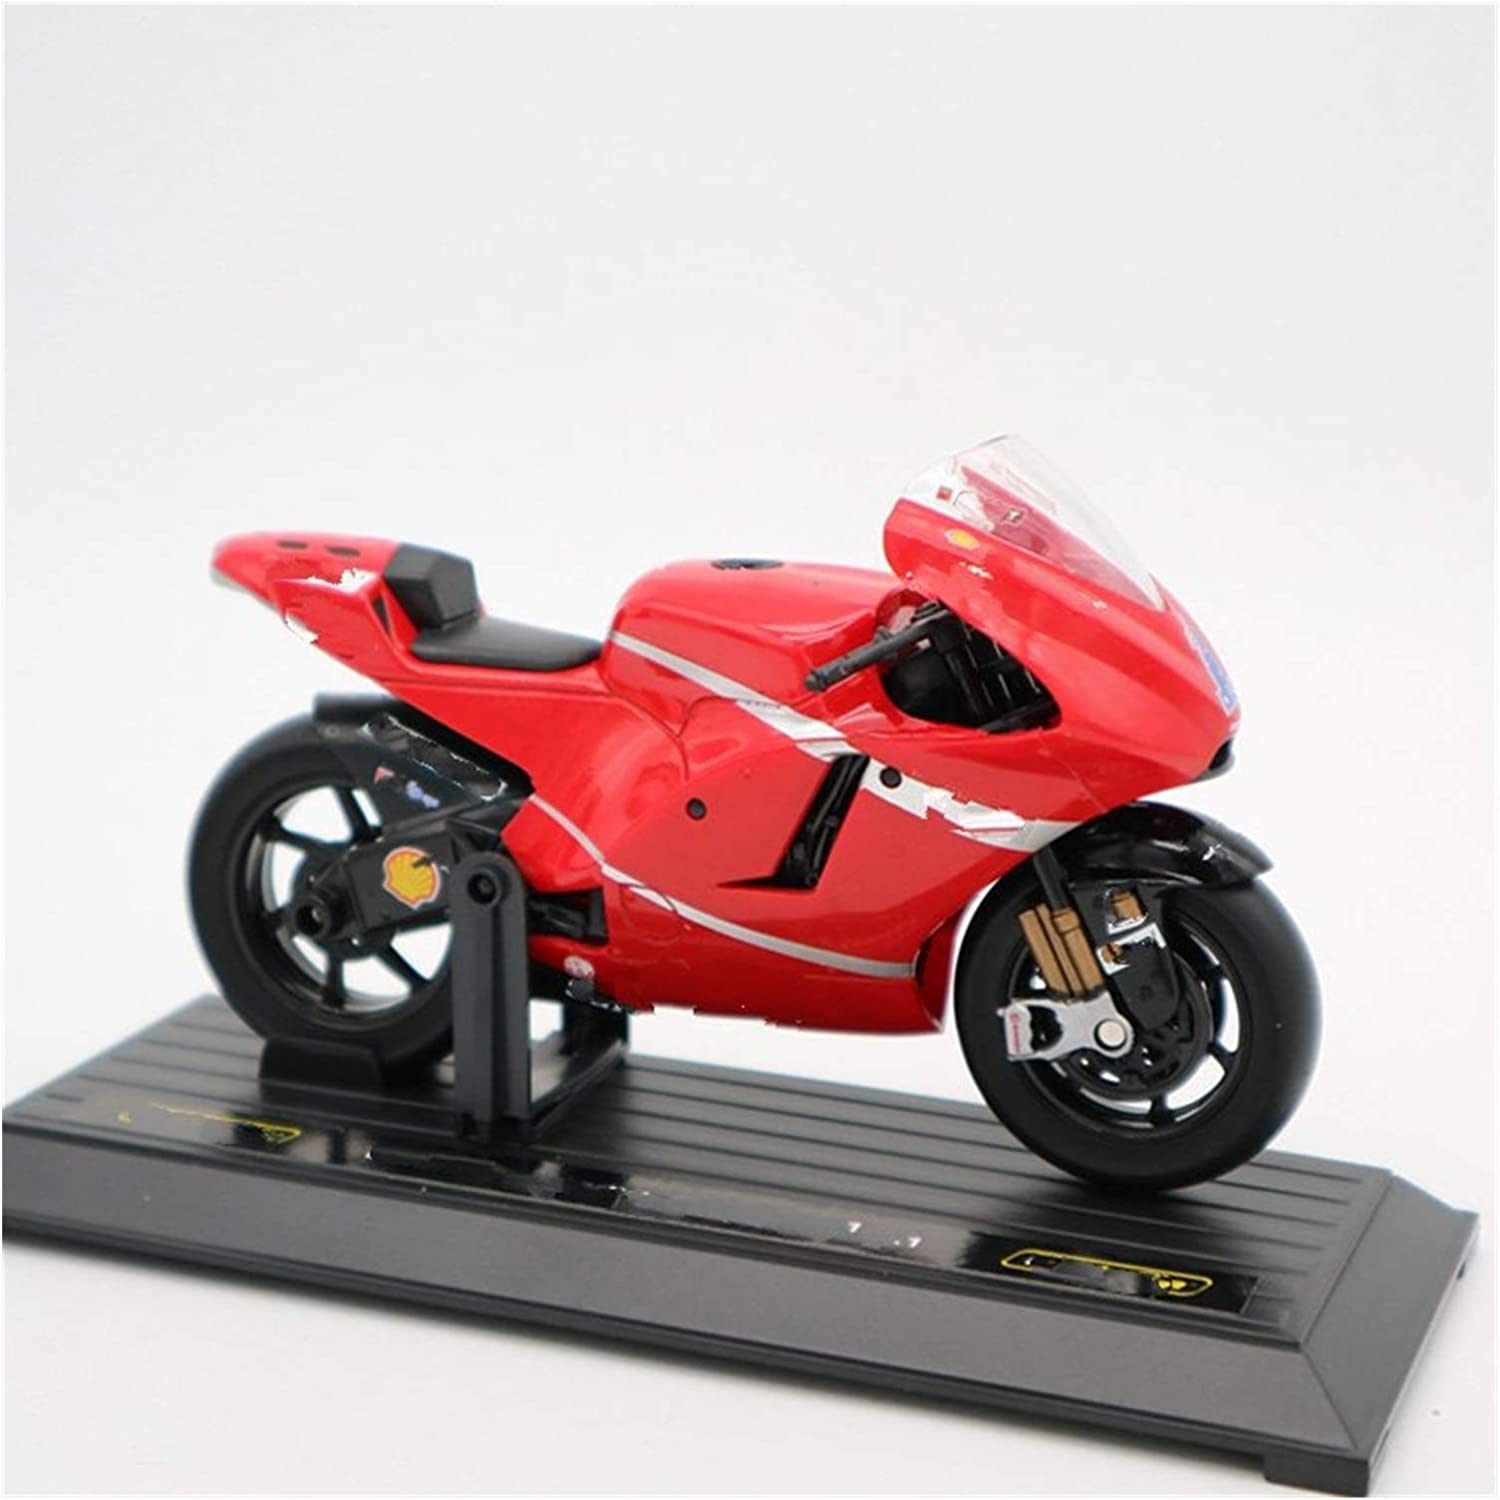 ZXPP Diecast Model Car Limited time Max 66% OFF for free shipping 1:16 Allo Motorcycle Scale Racing